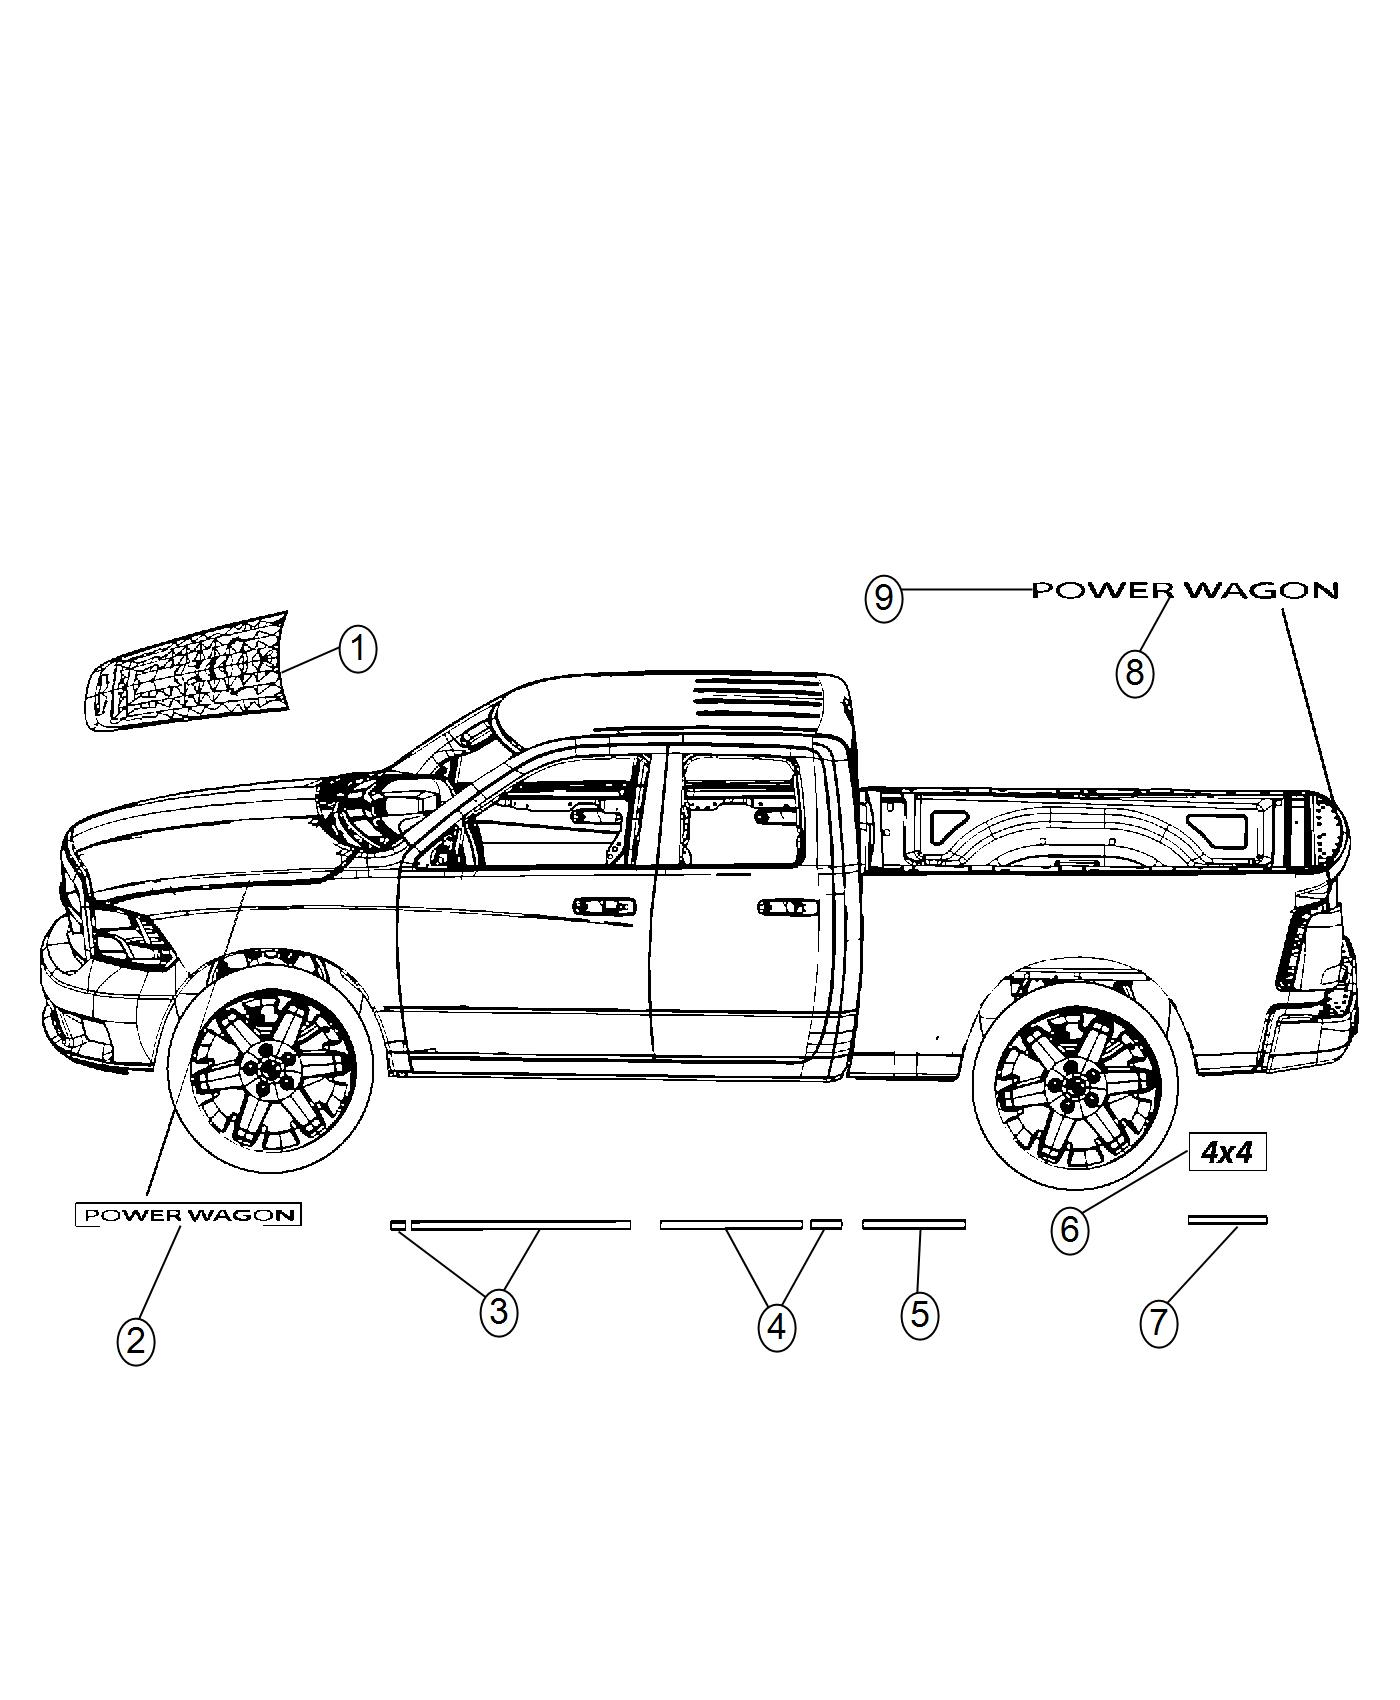 Ram Decal Tailgate Power Wagon Other Plimited